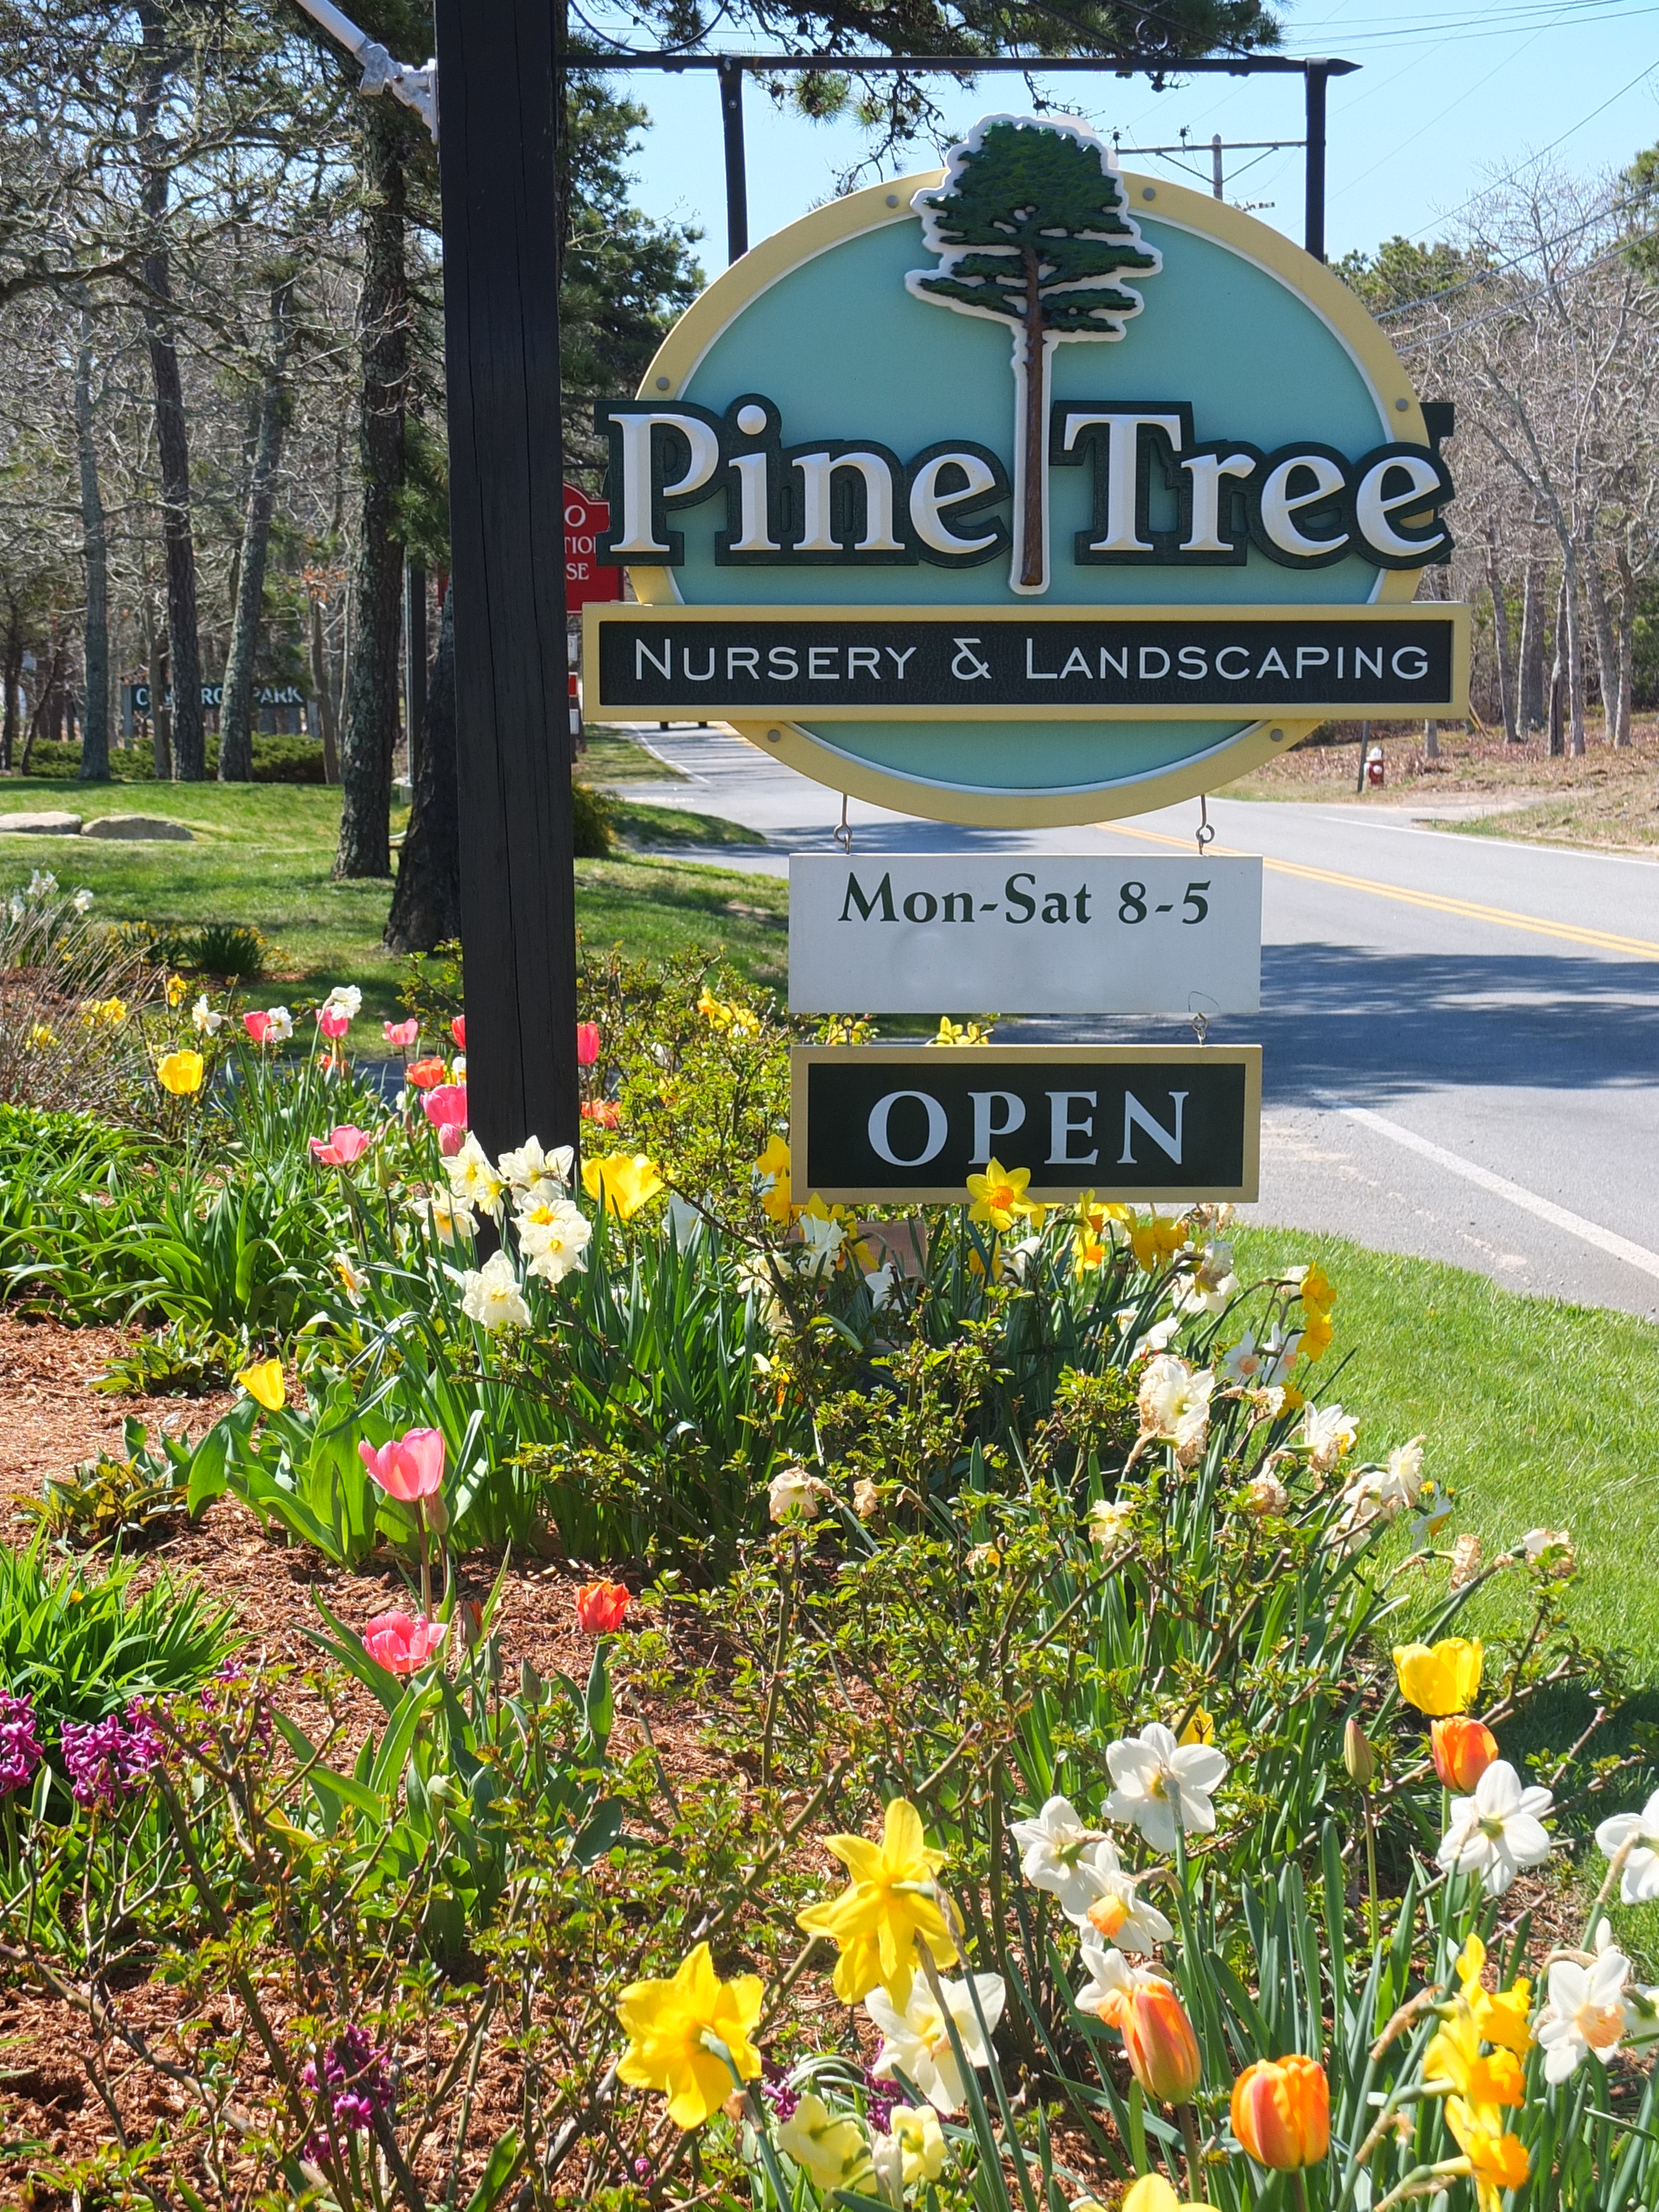 Road Route 137 In South Chatham Pine Tree Still Offers Lower Cape Codders Both A Well Stocked Garden Center And Complete Landscaping Services